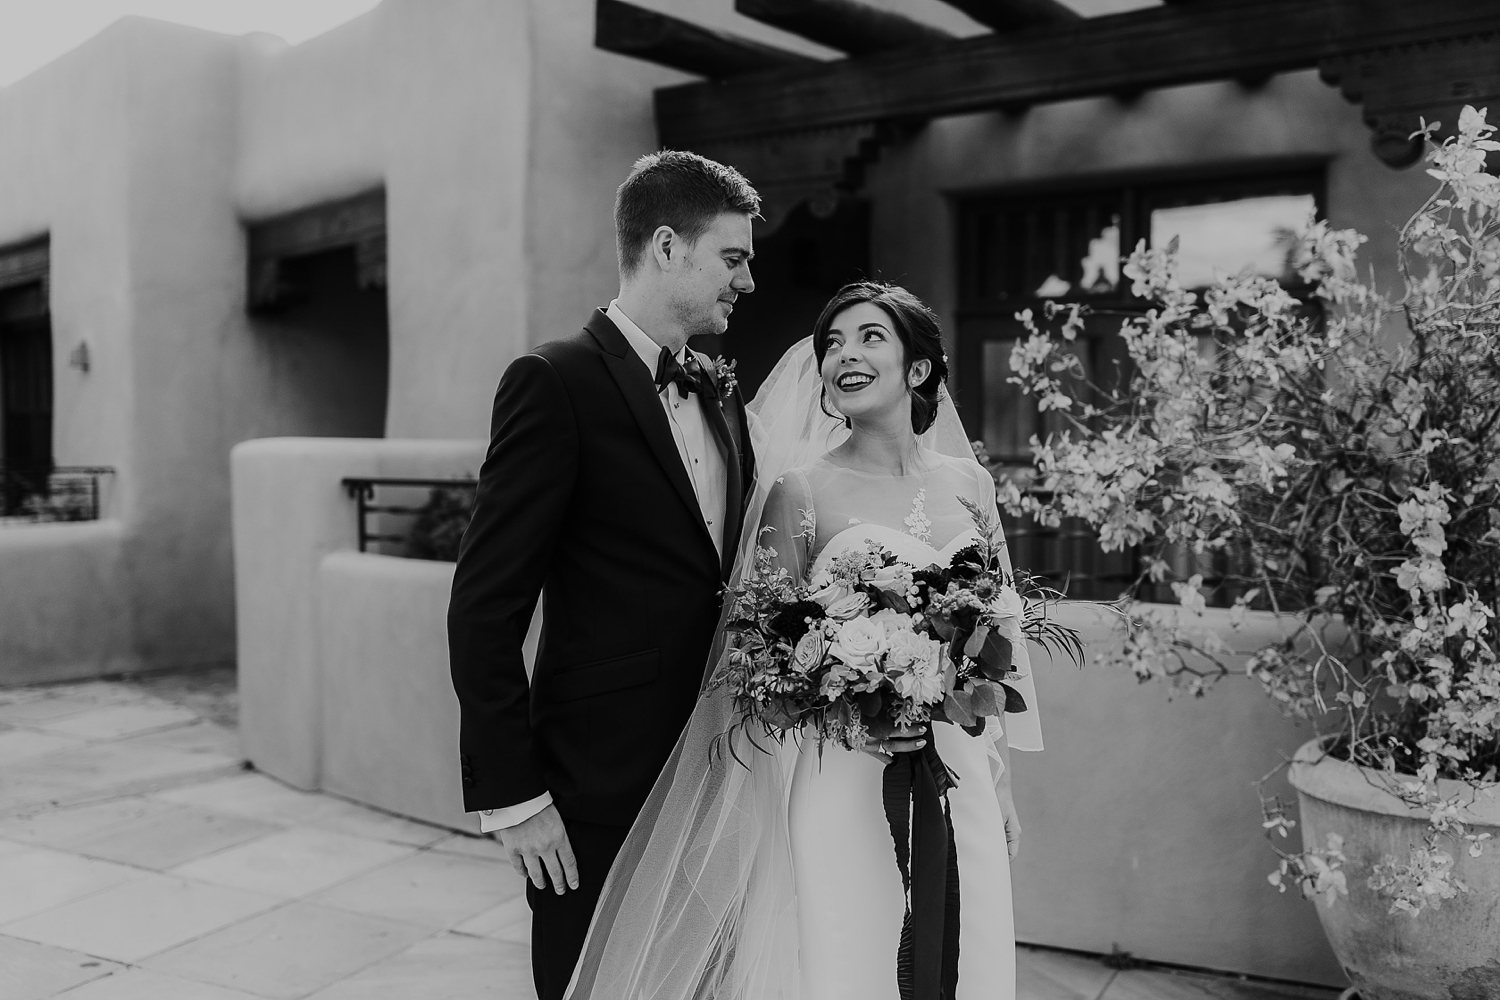 Alicia+lucia+photography+-+albuquerque+wedding+photographer+-+santa+fe+wedding+photography+-+new+mexico+wedding+photographer+-+la+fonda+santa+fe+wedding+-+santa+fe+fall+wedding+-+la+fonda+fall+wedding_0022.jpg